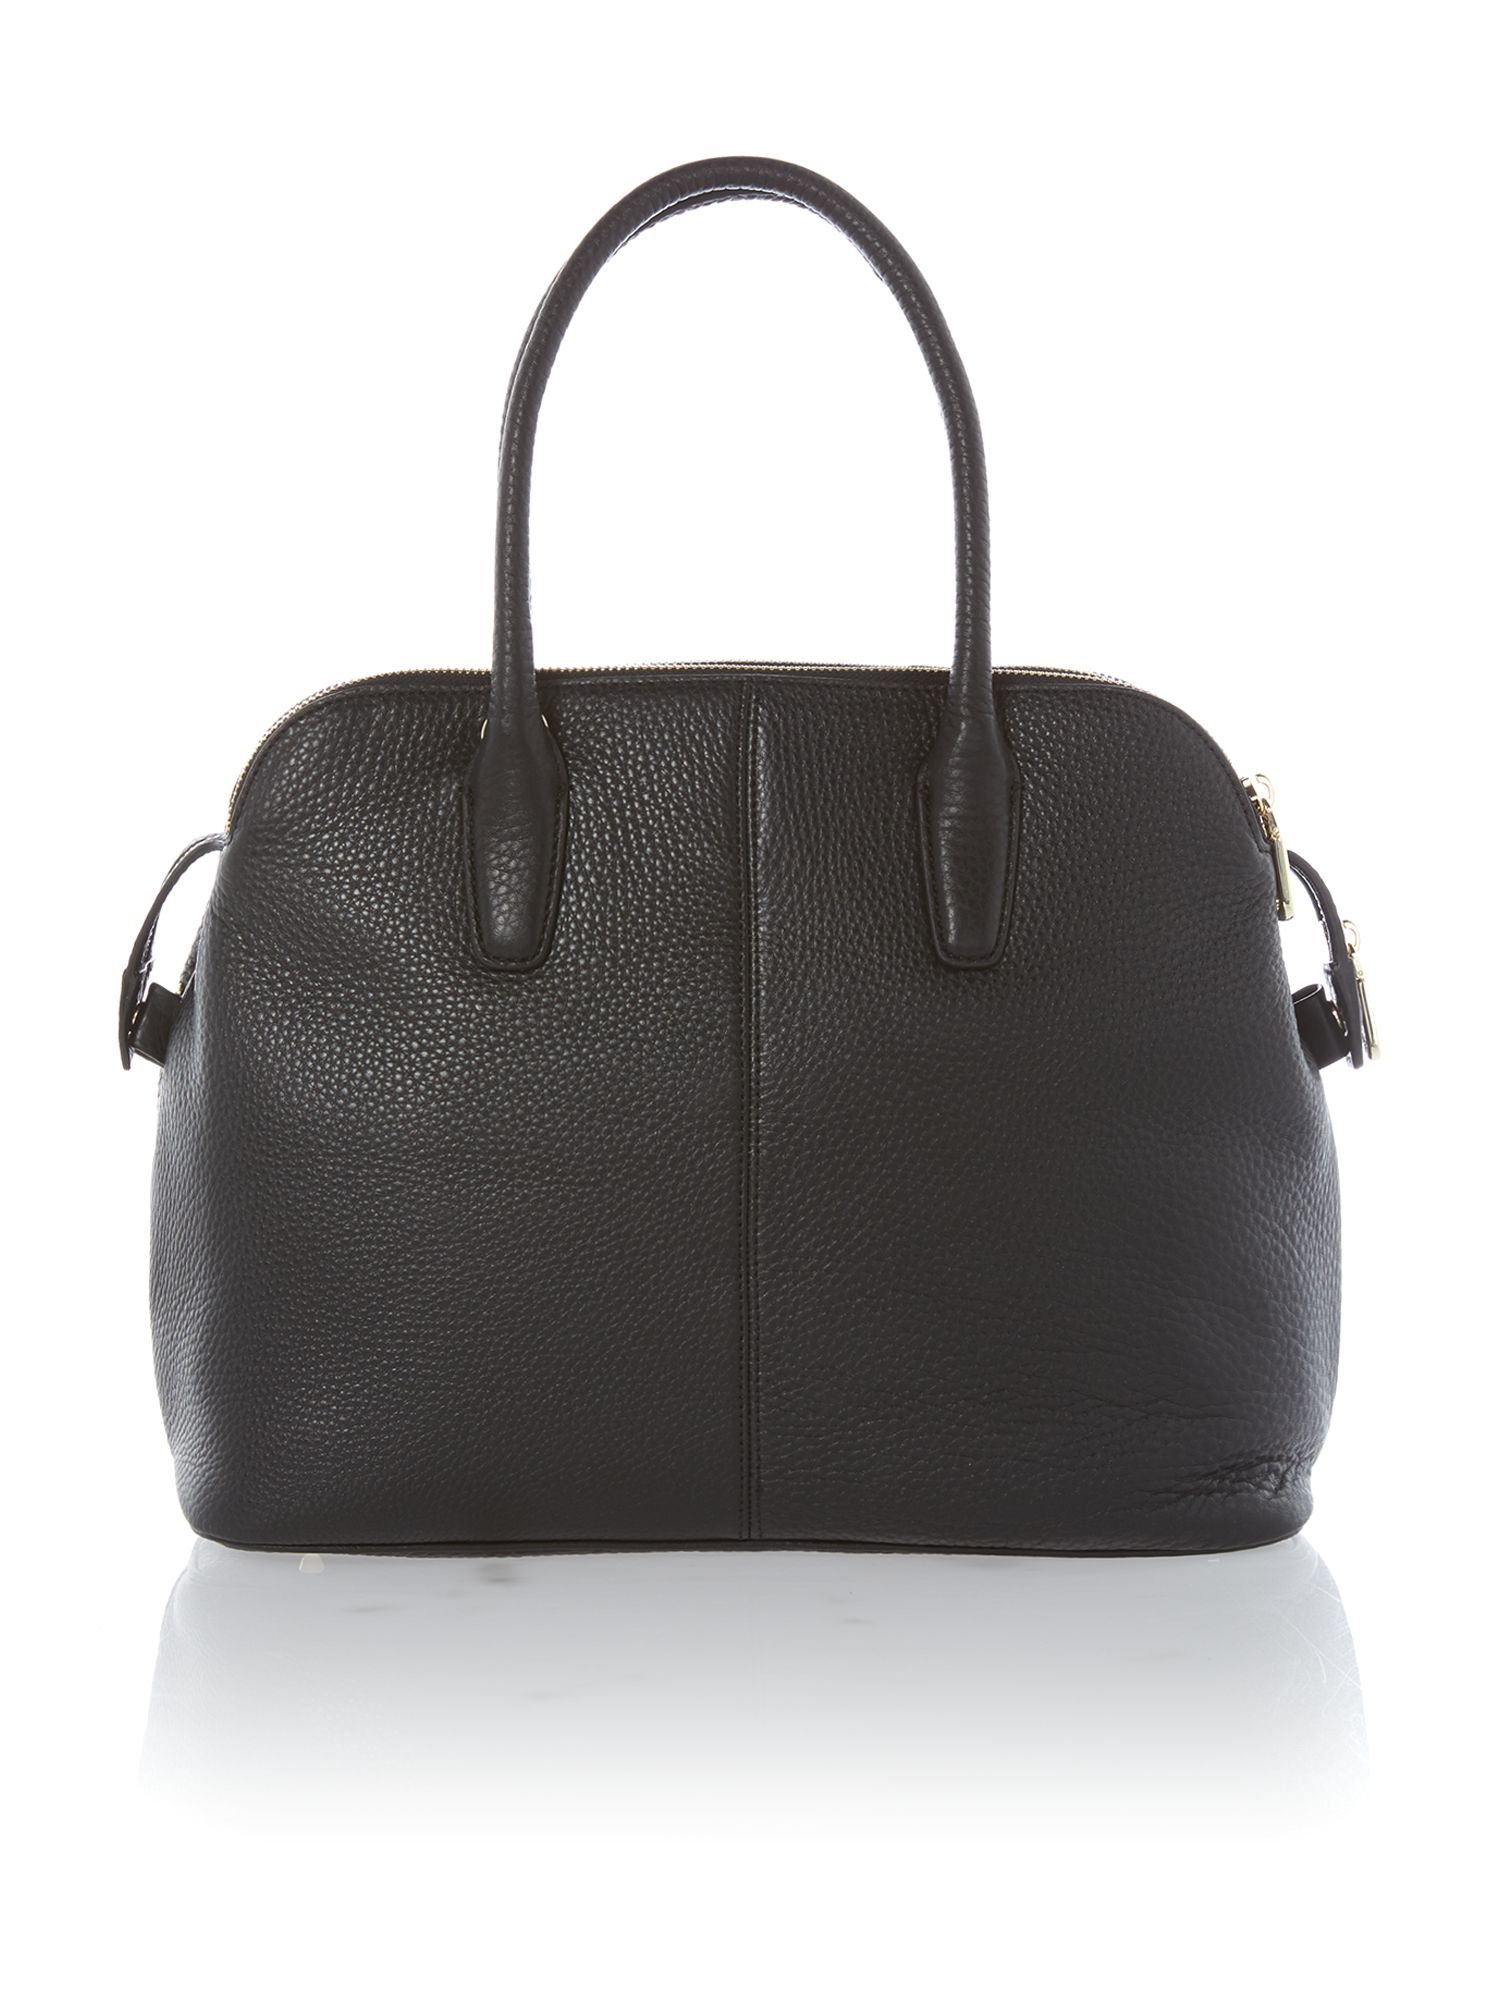 Tribeca black triple zip satchel bag